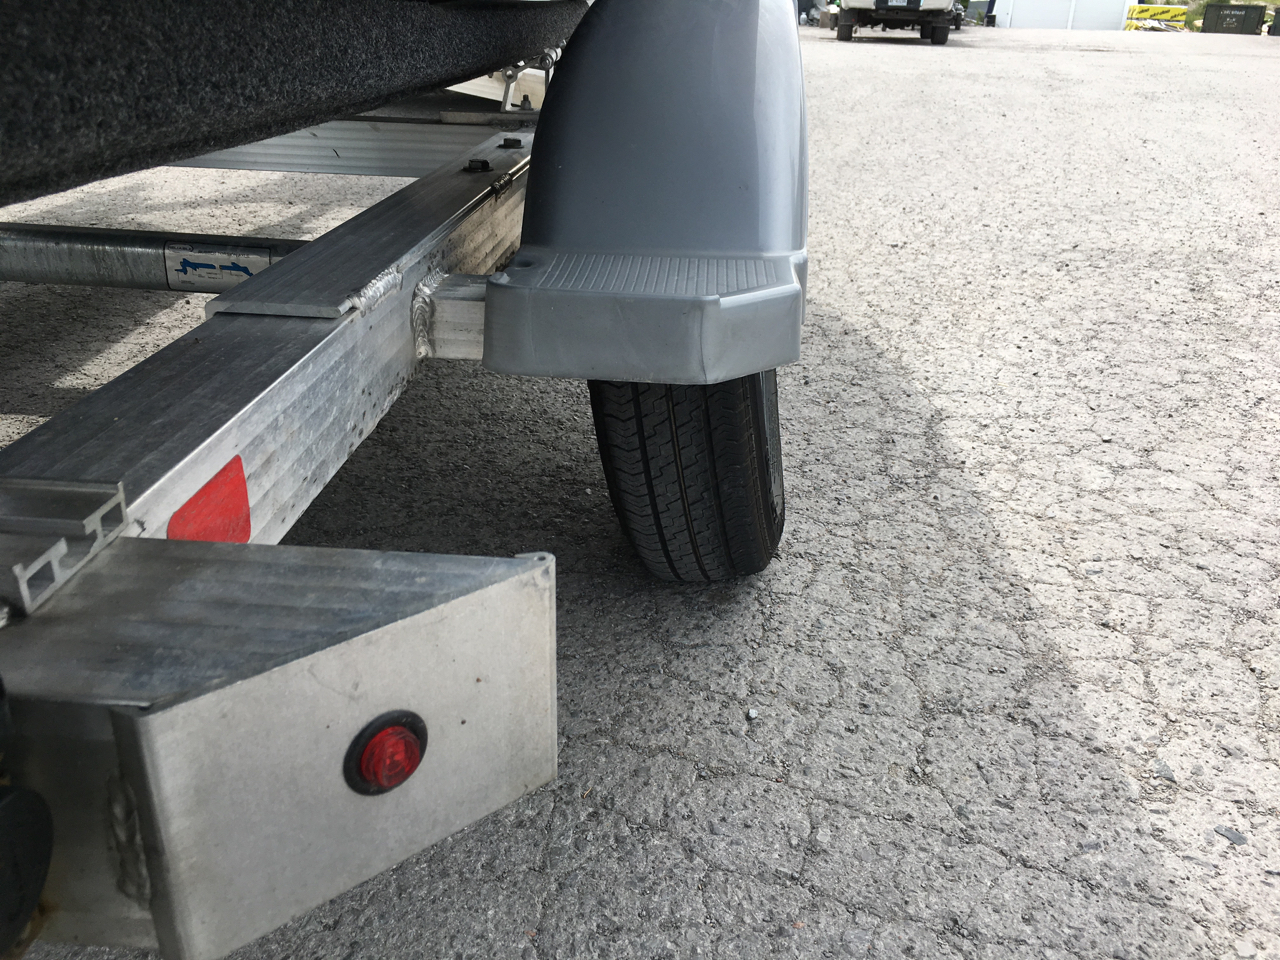 trailering mistakes